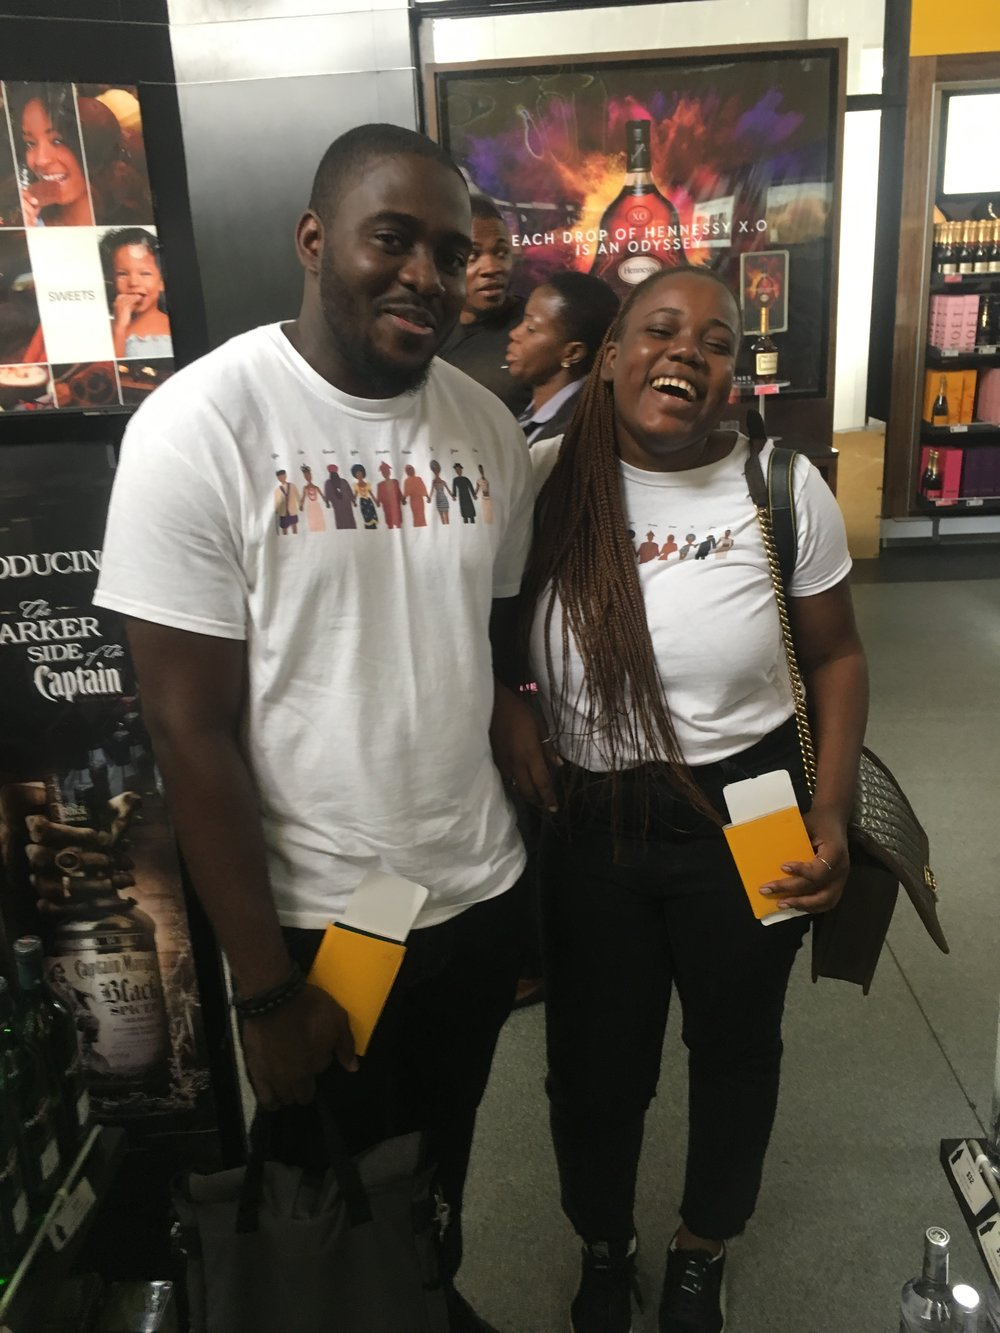 No-one needs to be this happy in Nigerian duty free